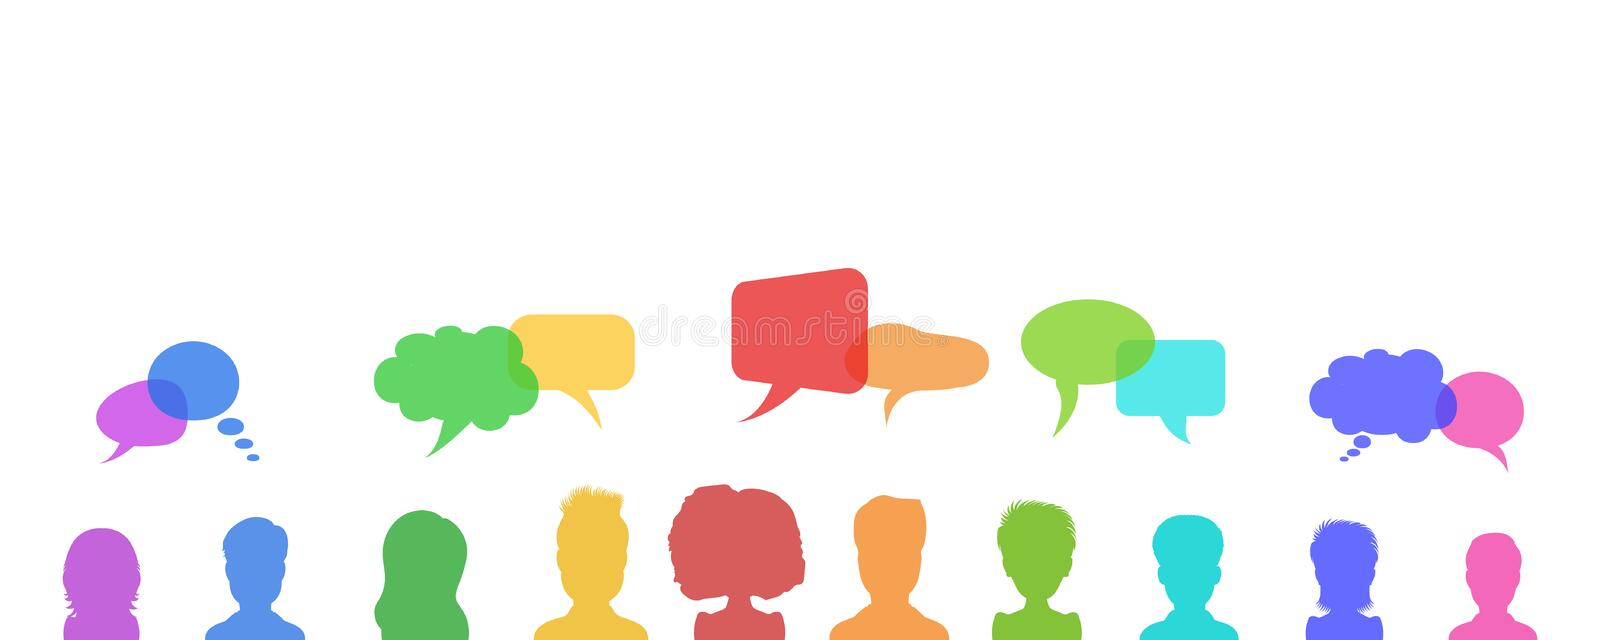 Business discussion or people talking, chat dialogue speech bubbles, news or social network design concept. Flat style. vector illustration